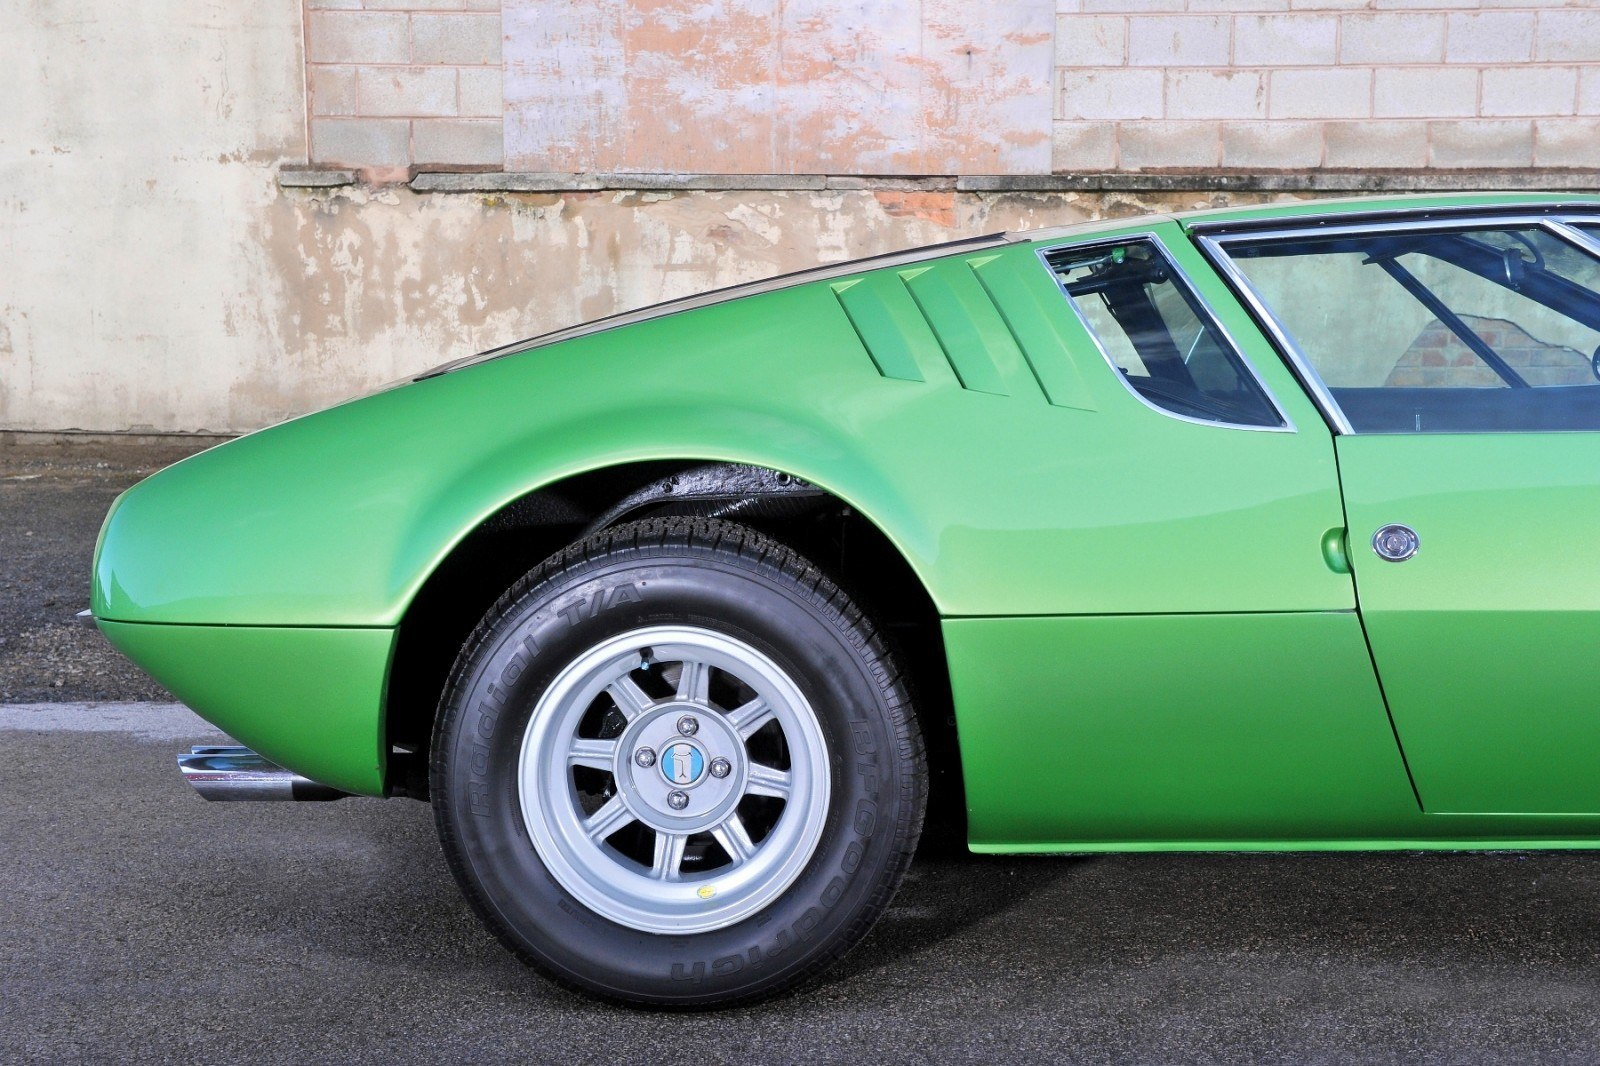 RM Monaco 2014 Highlights - 1969 DeTomaso Mangusta Brings $367k of Brutal Supercar Cash 7